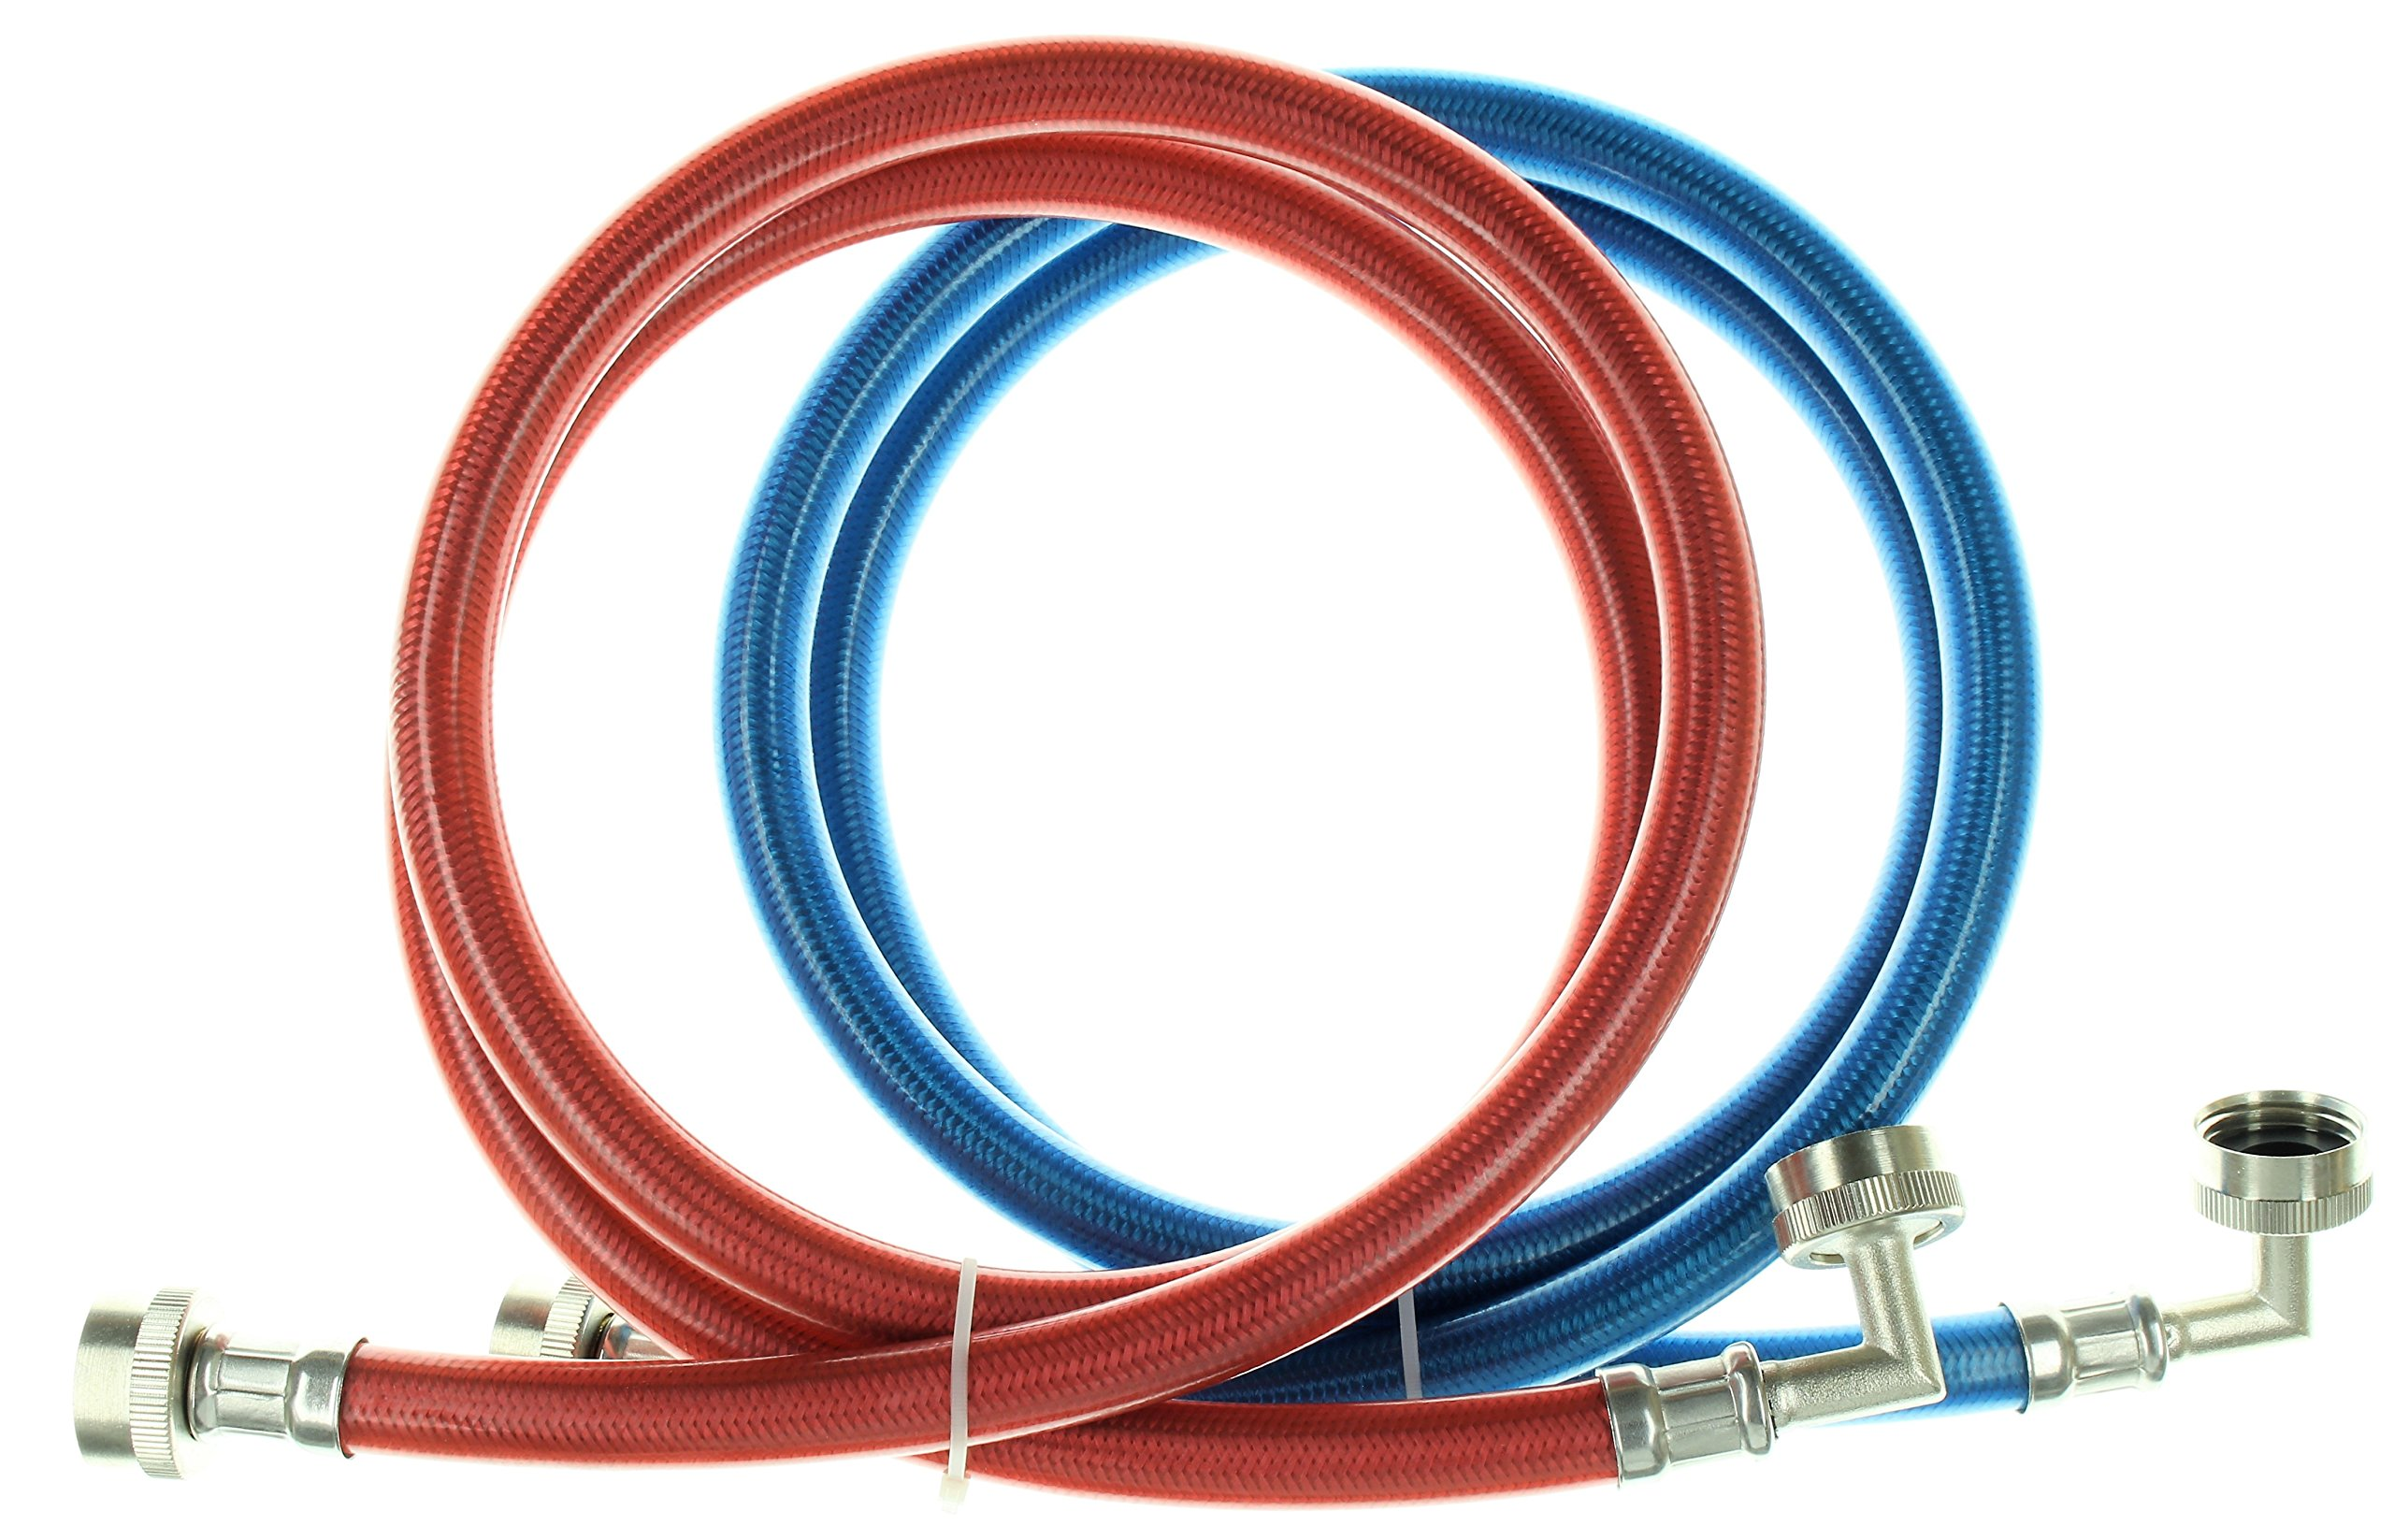 Triple Layer Stainless Steel Washing Machine Hoses with 90 Degree Elbow, 5 Ft Burst Proof (2 Pack) Red and Blue Color Coded Water Connection Supply Lines